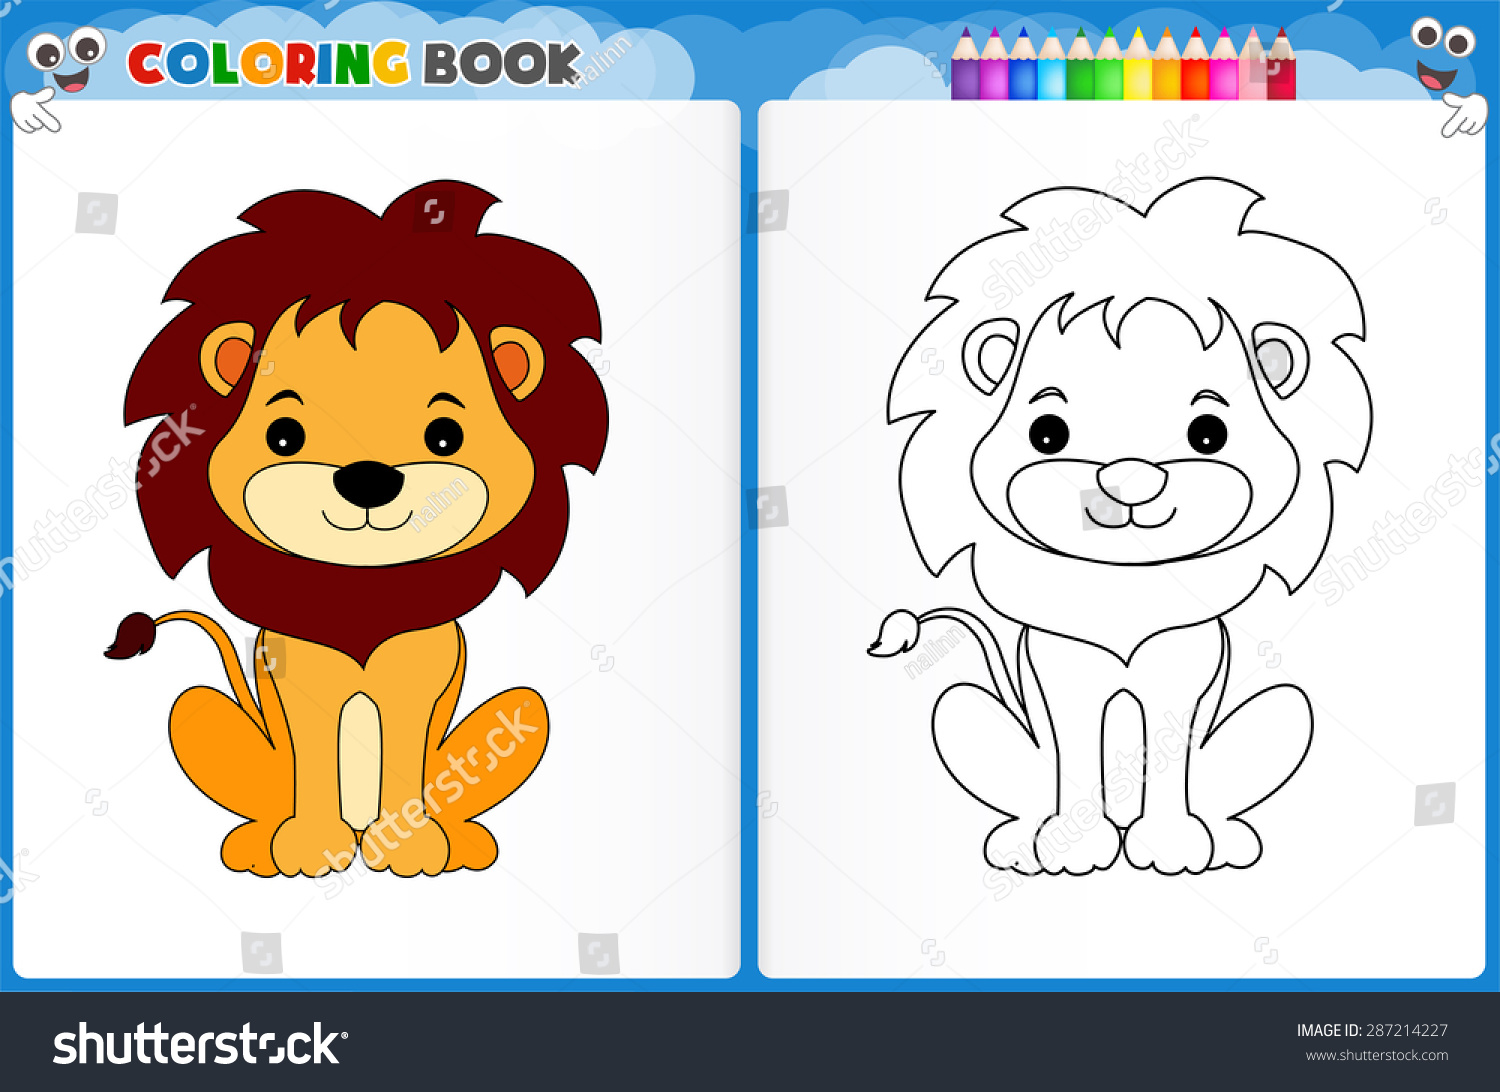 Cute Lion Coloring Pages For Kids